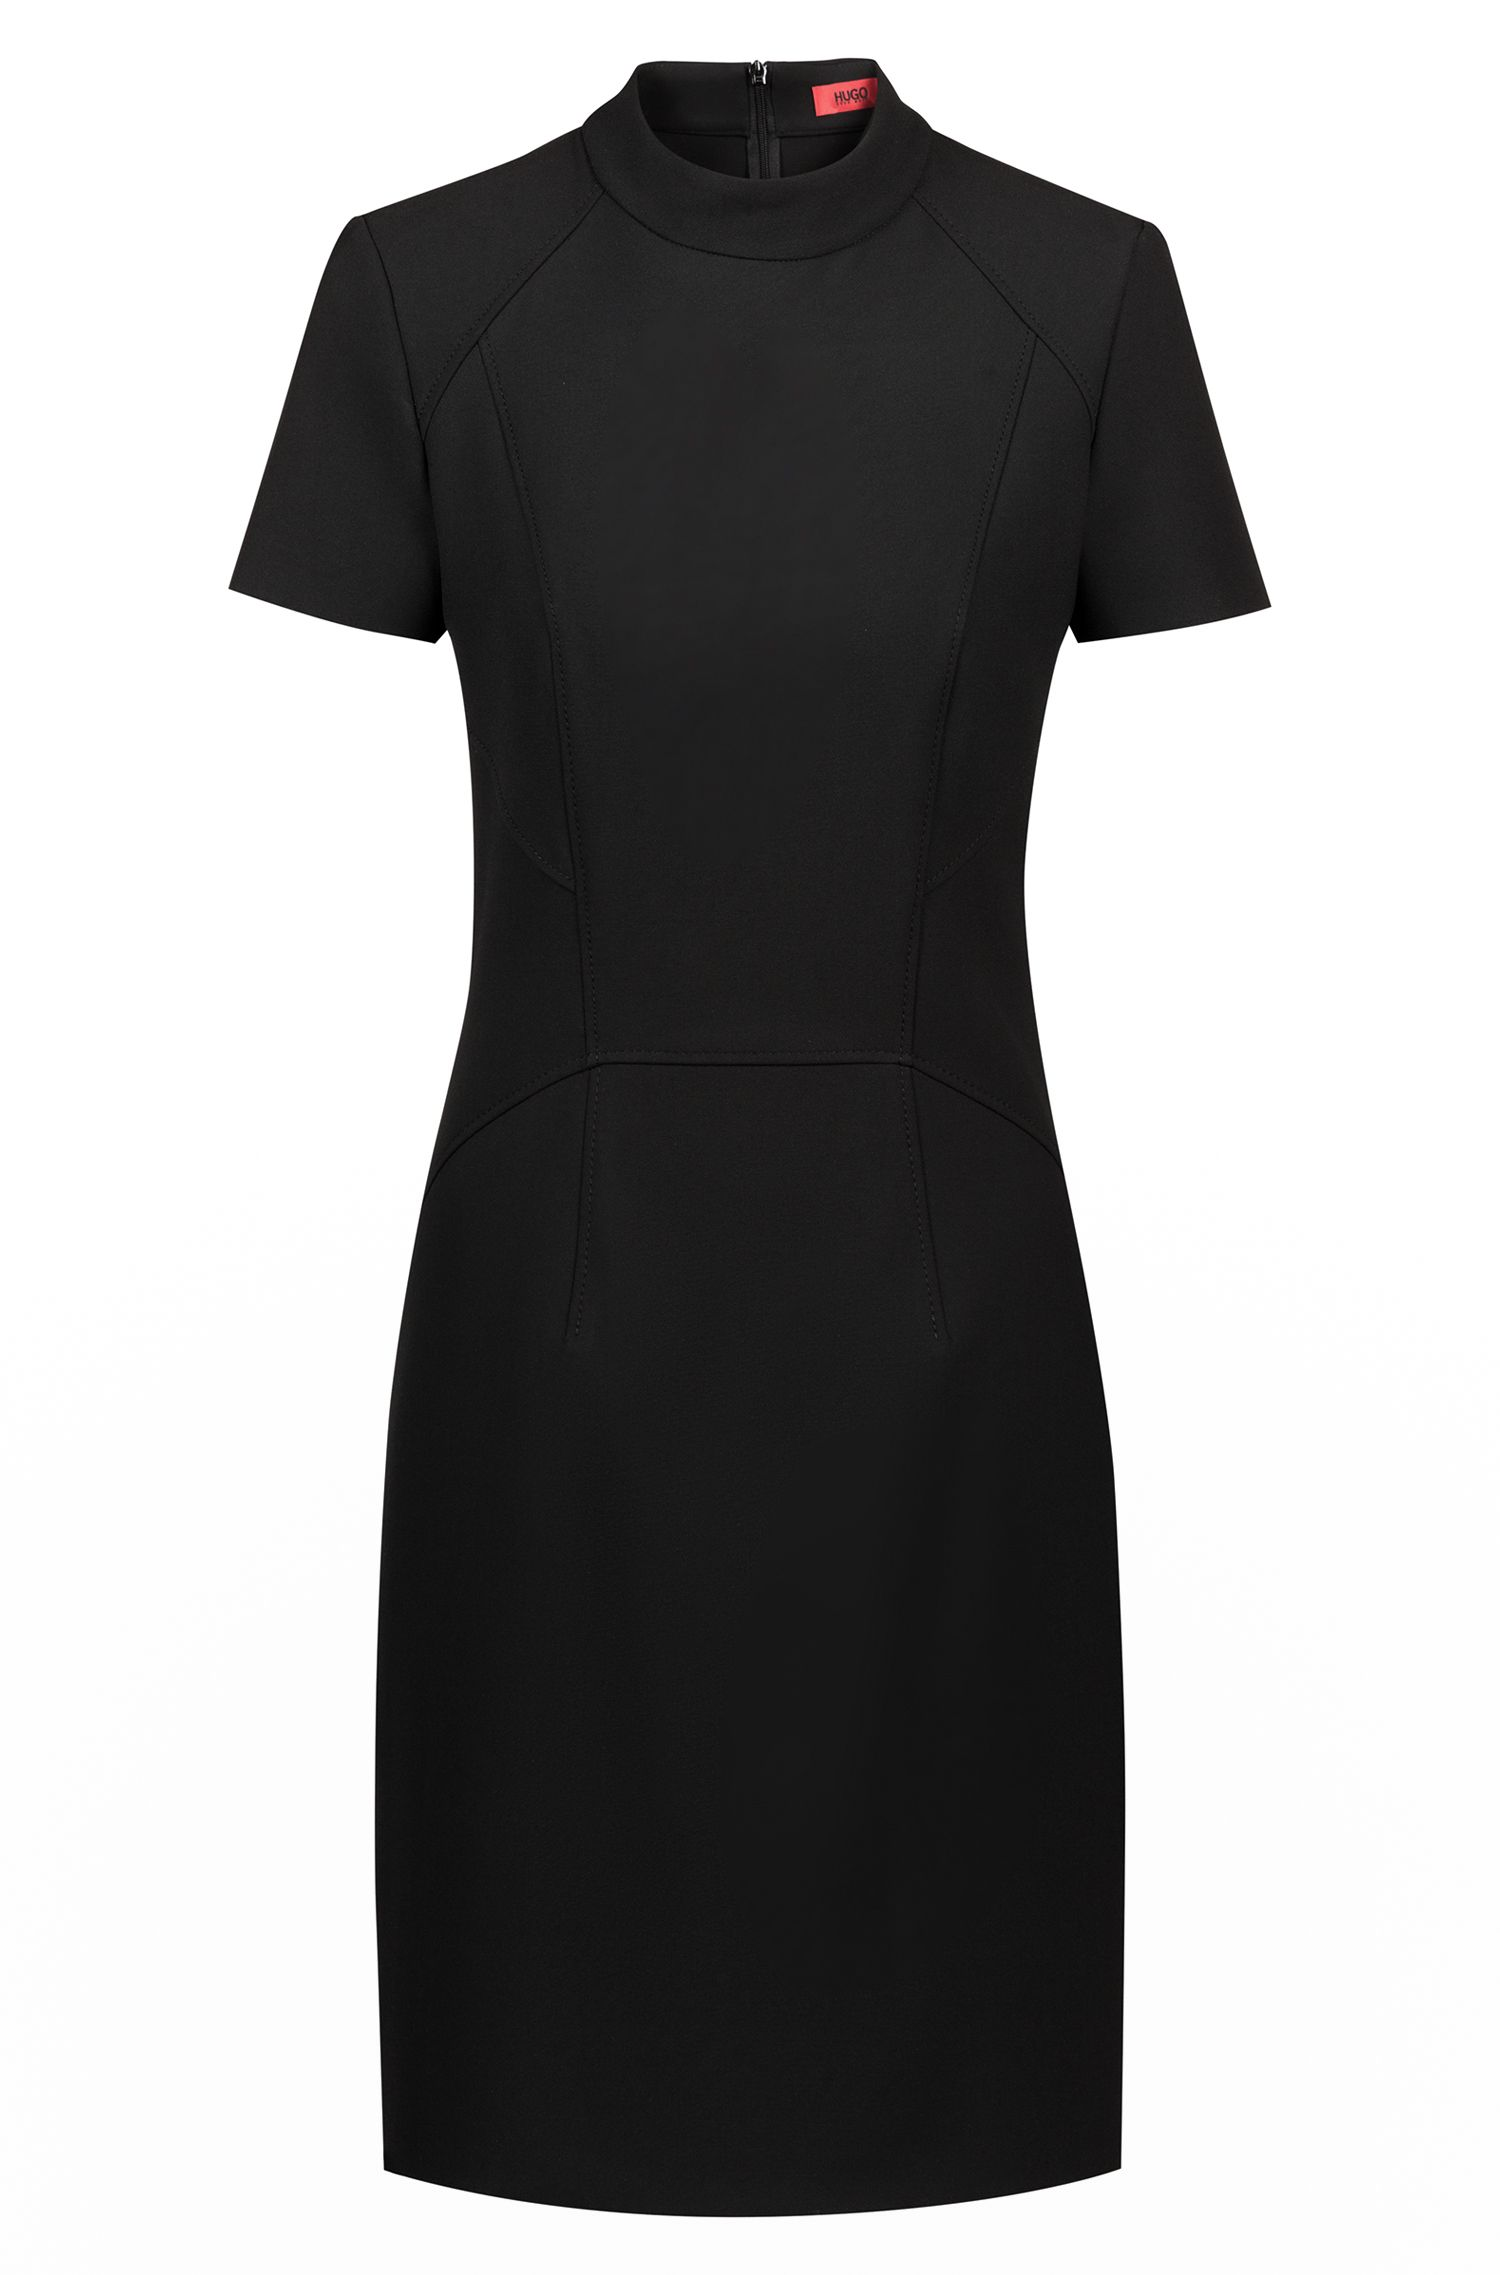 Short-sleeved dress in stretch fabric with stand collar, Black